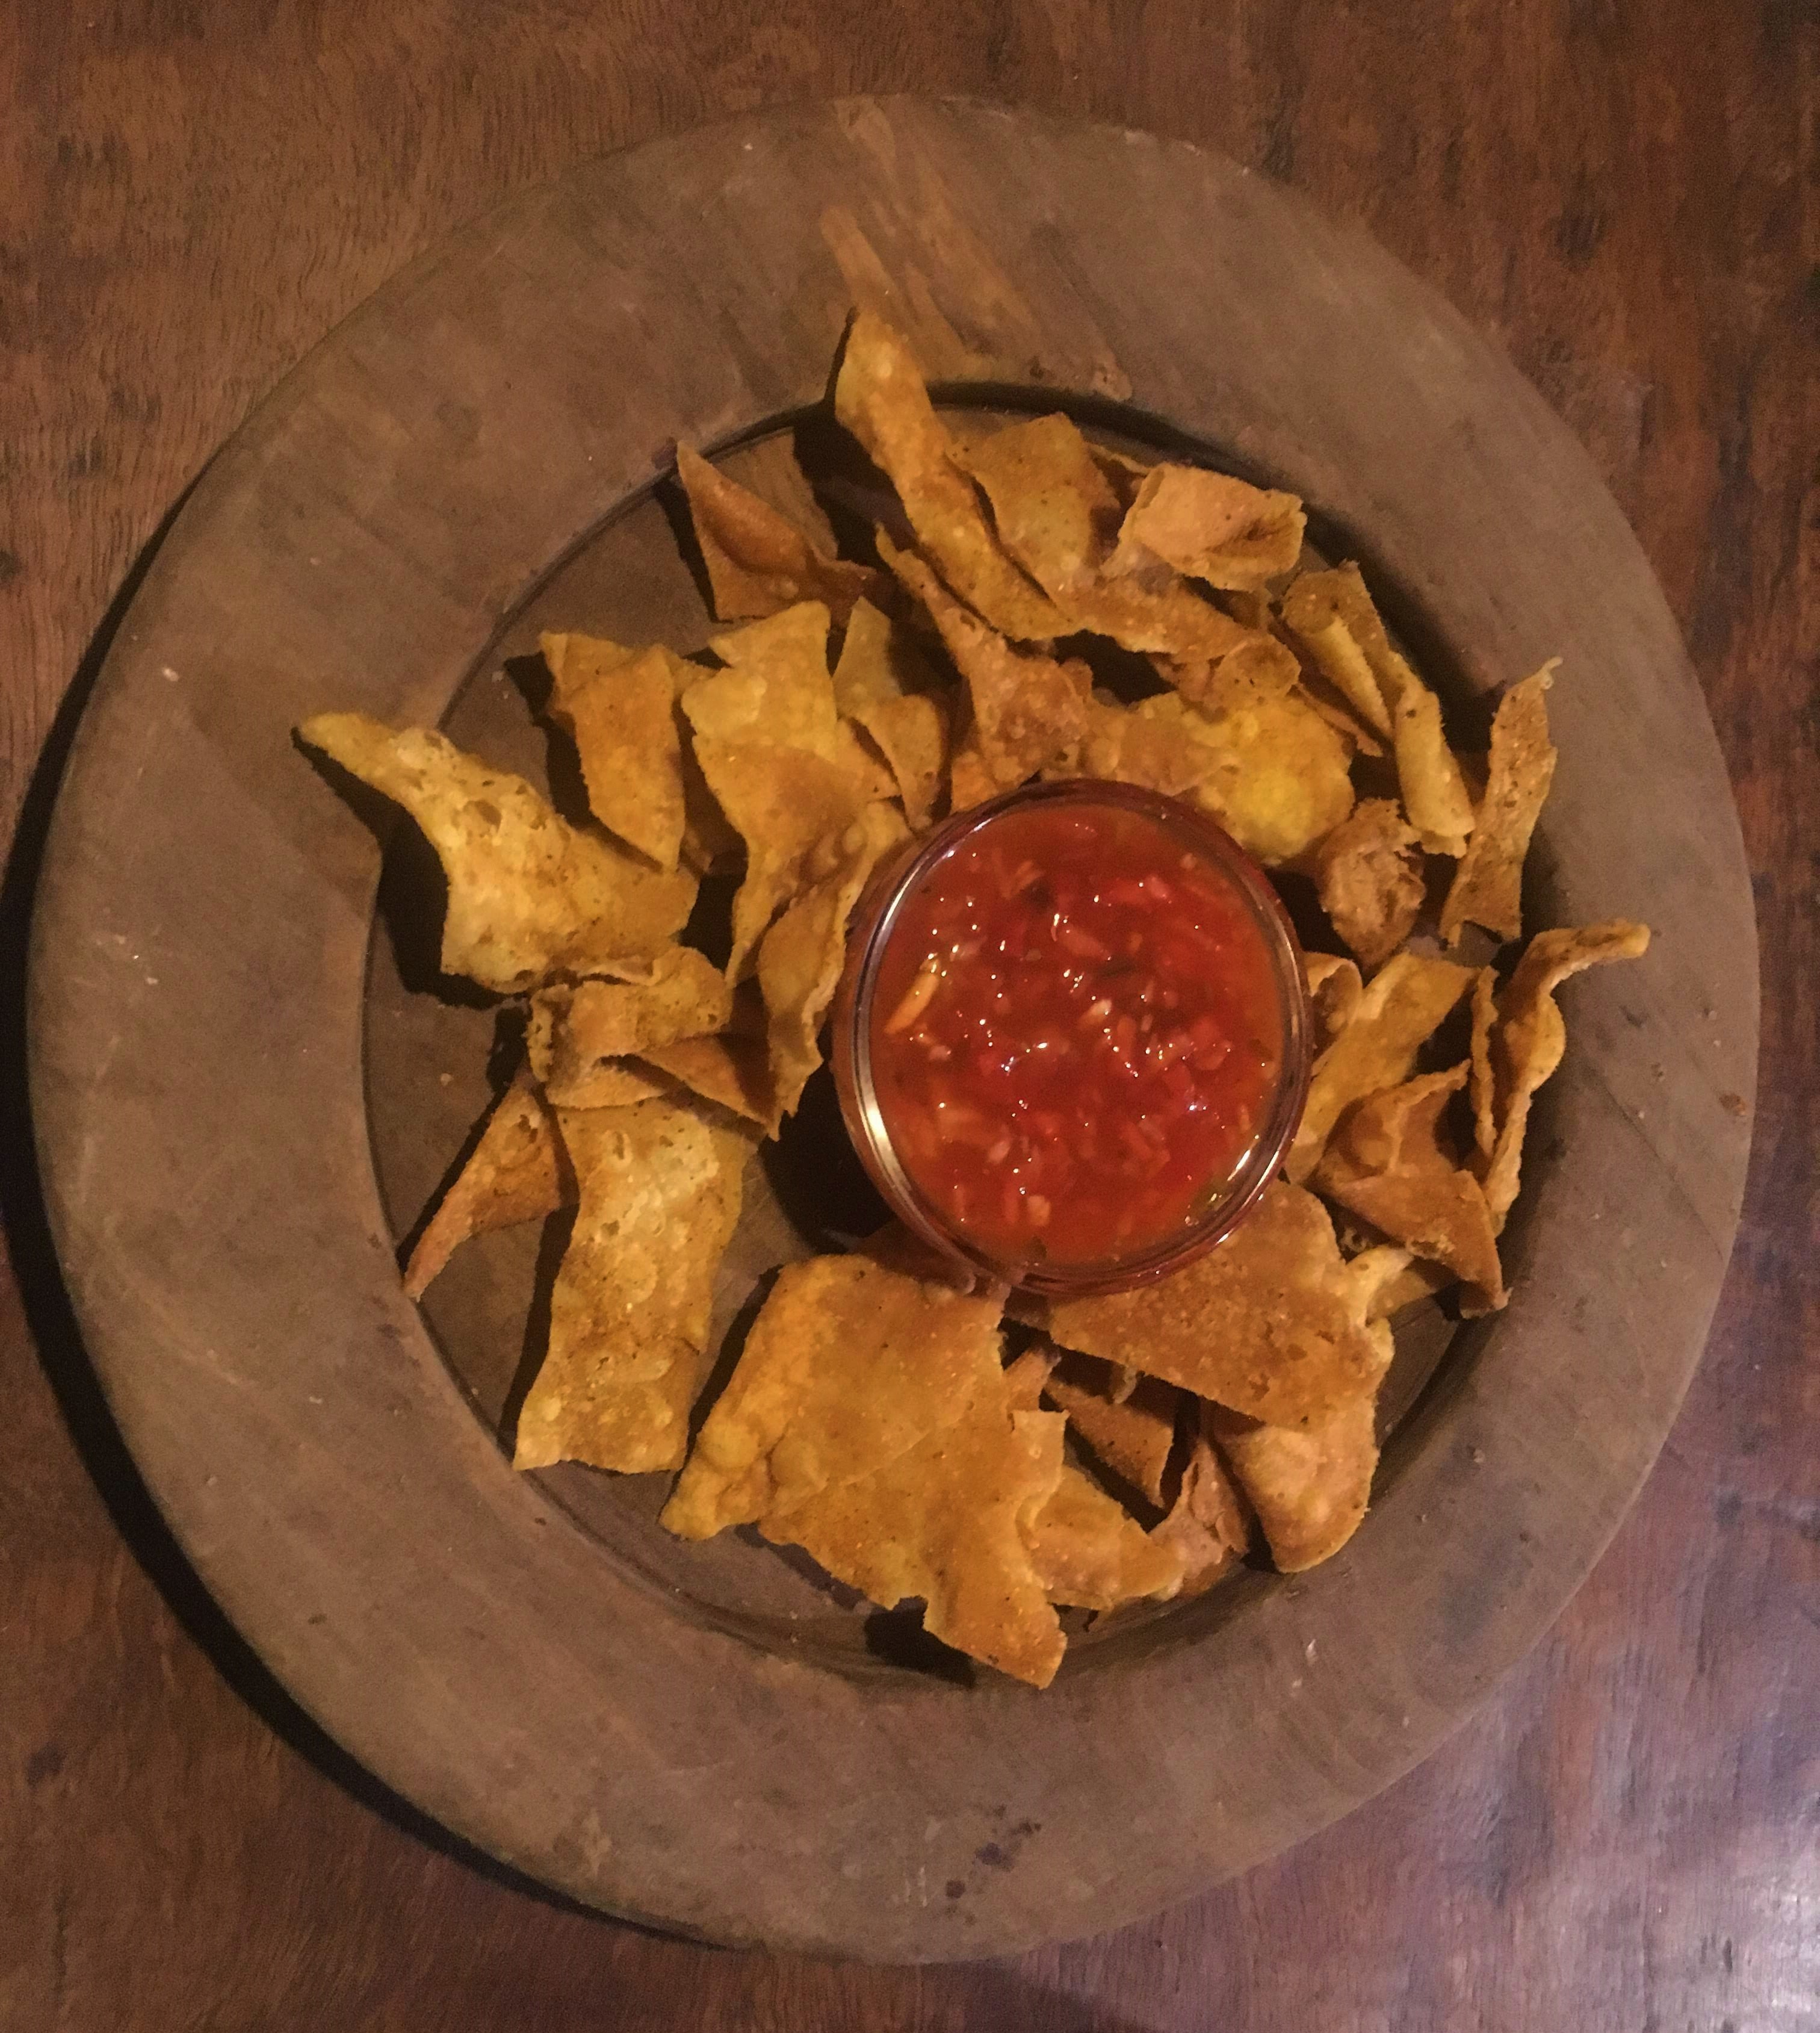 Nachos and homemade tomato sauce